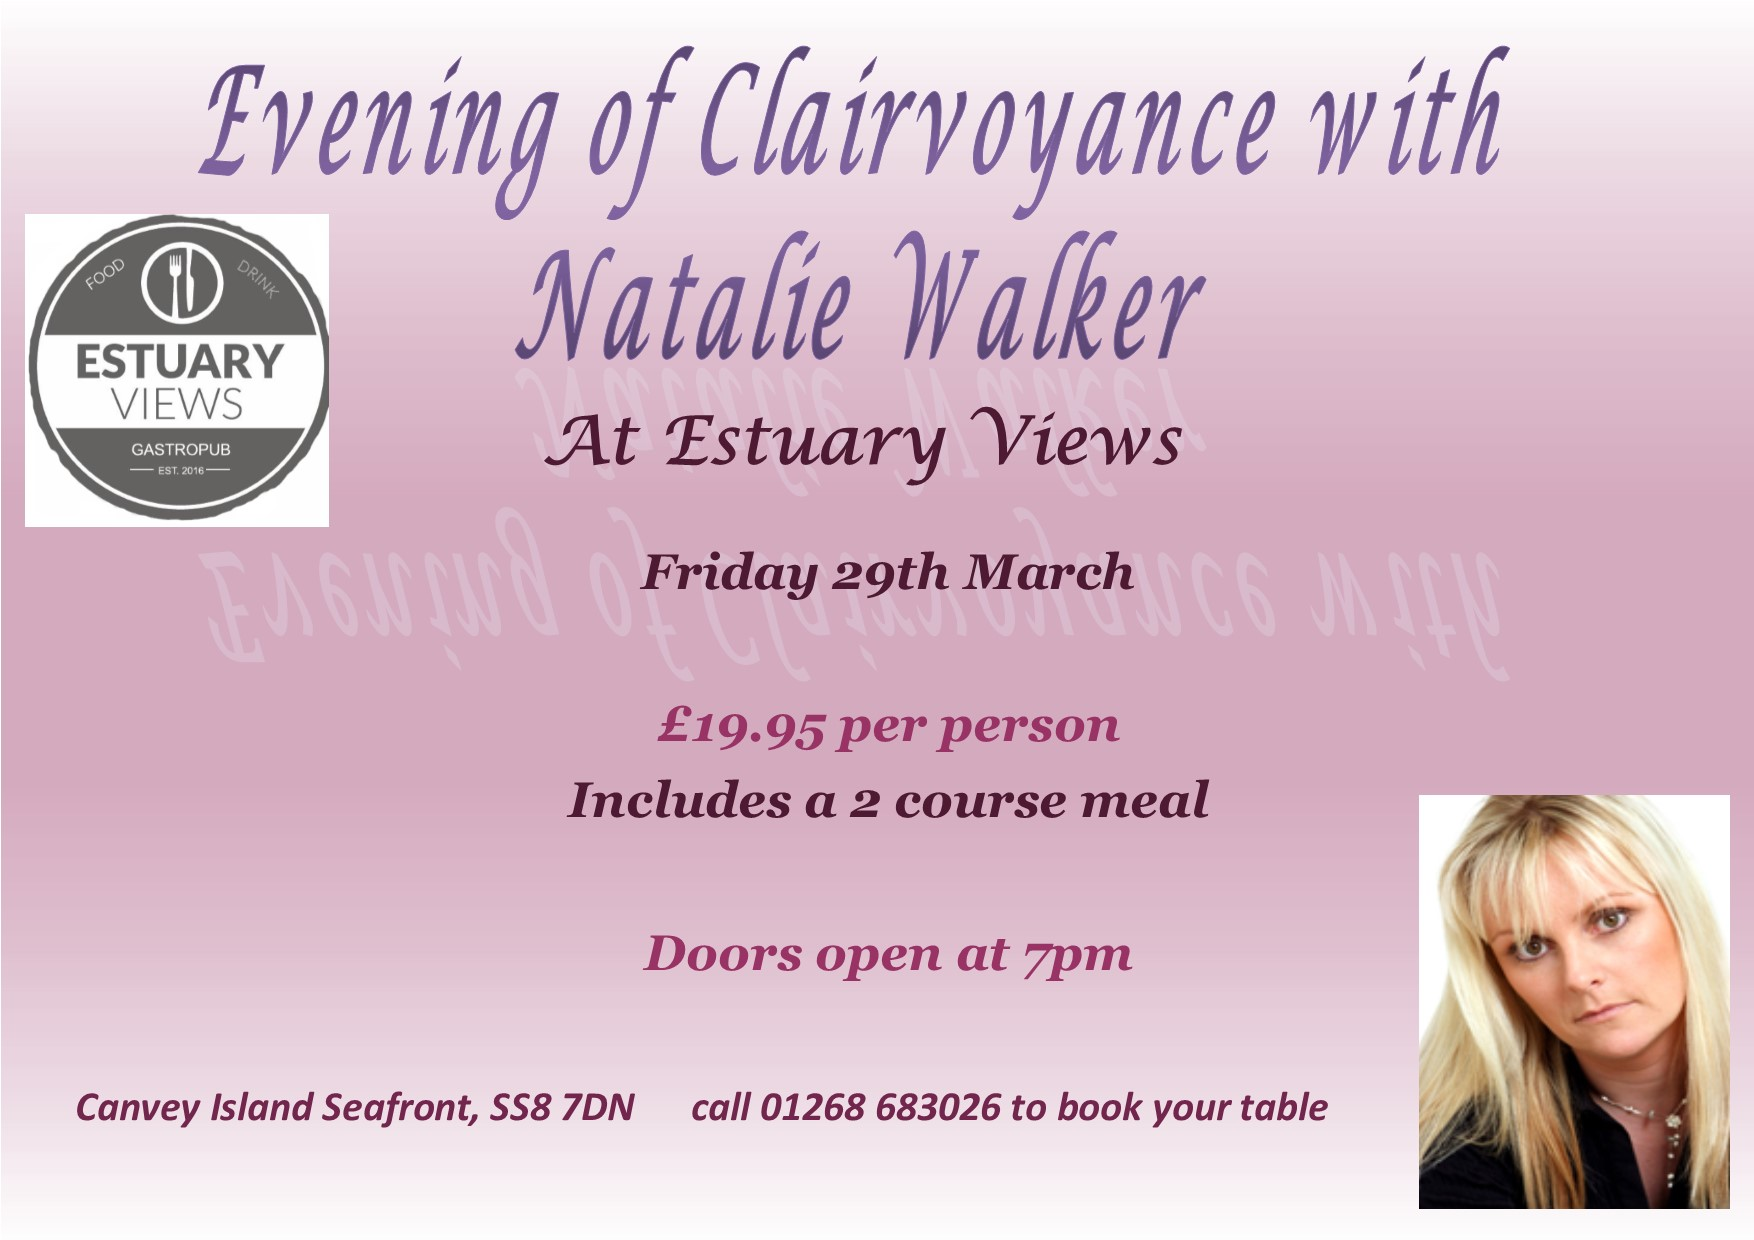 Evening of Clairvoyance with Natalie Walker